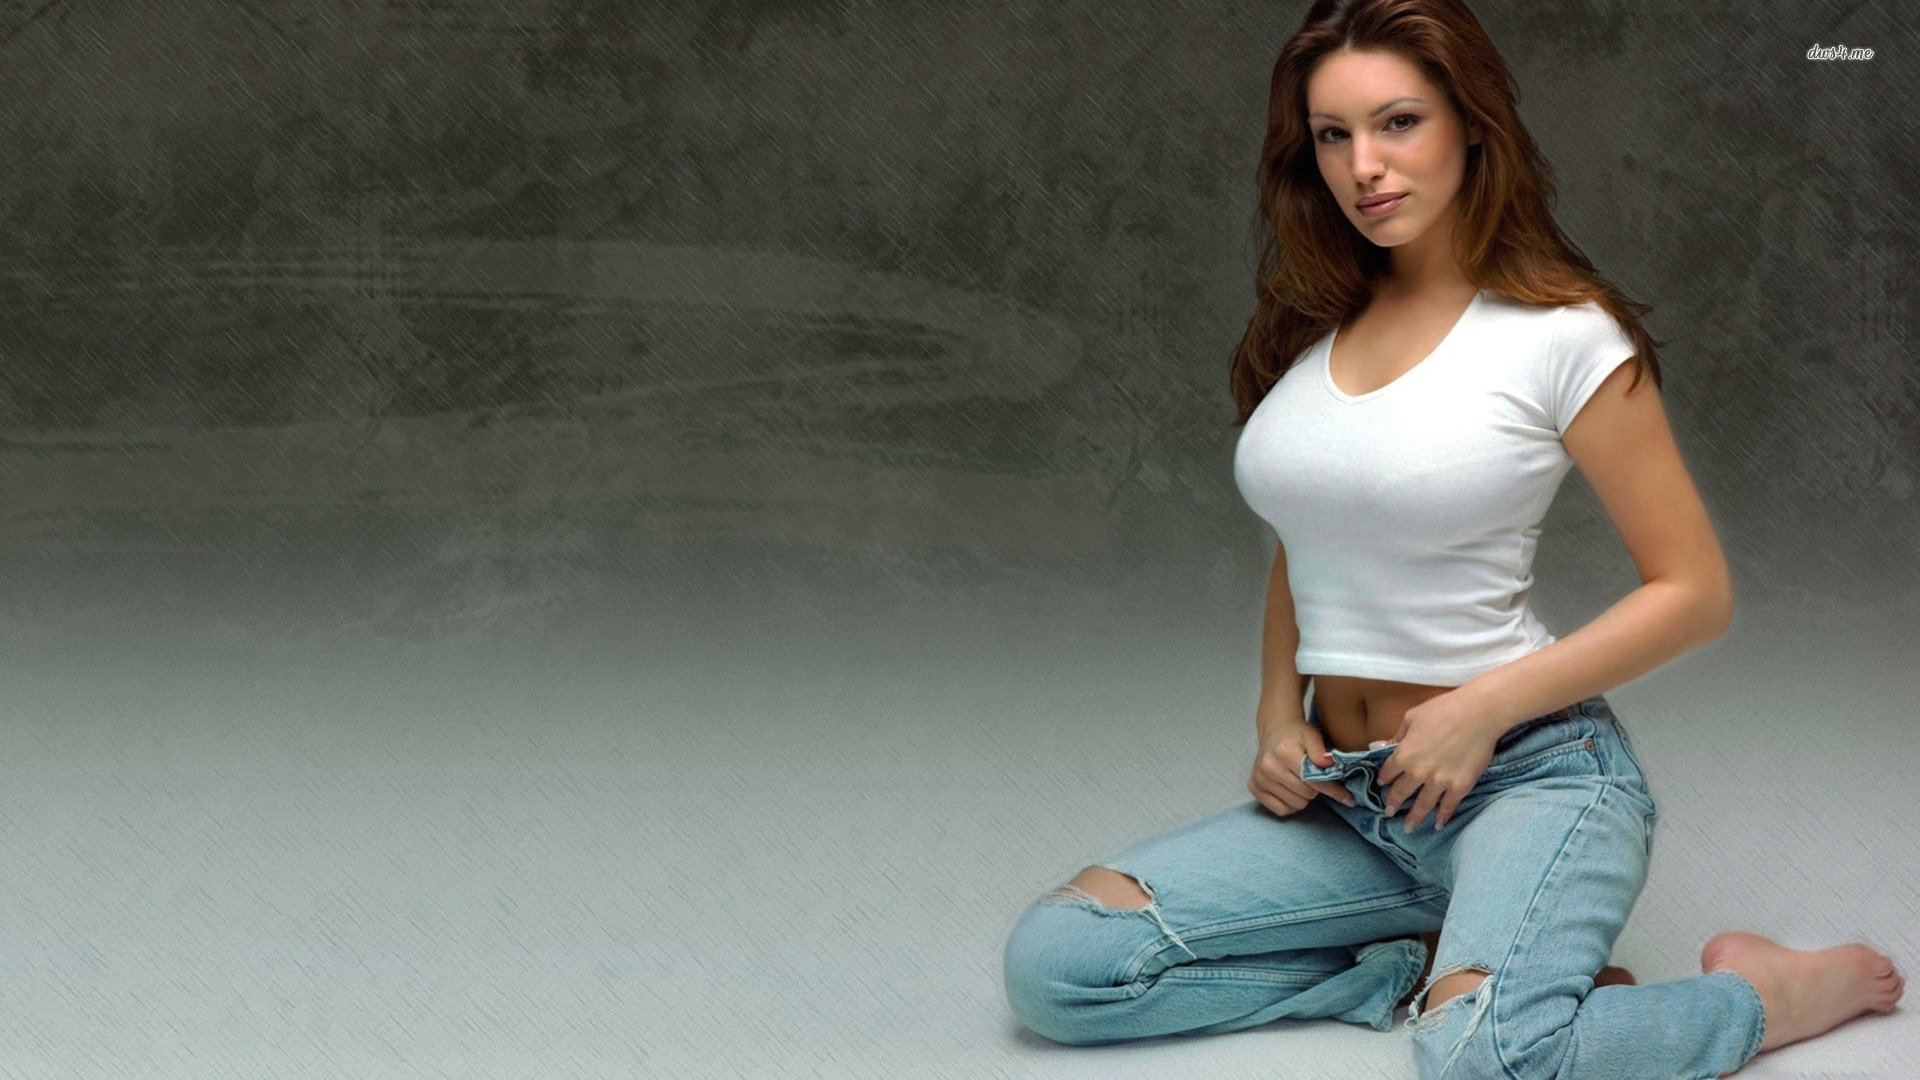 1920x1080 - Kelly Brook Wallpapers 1